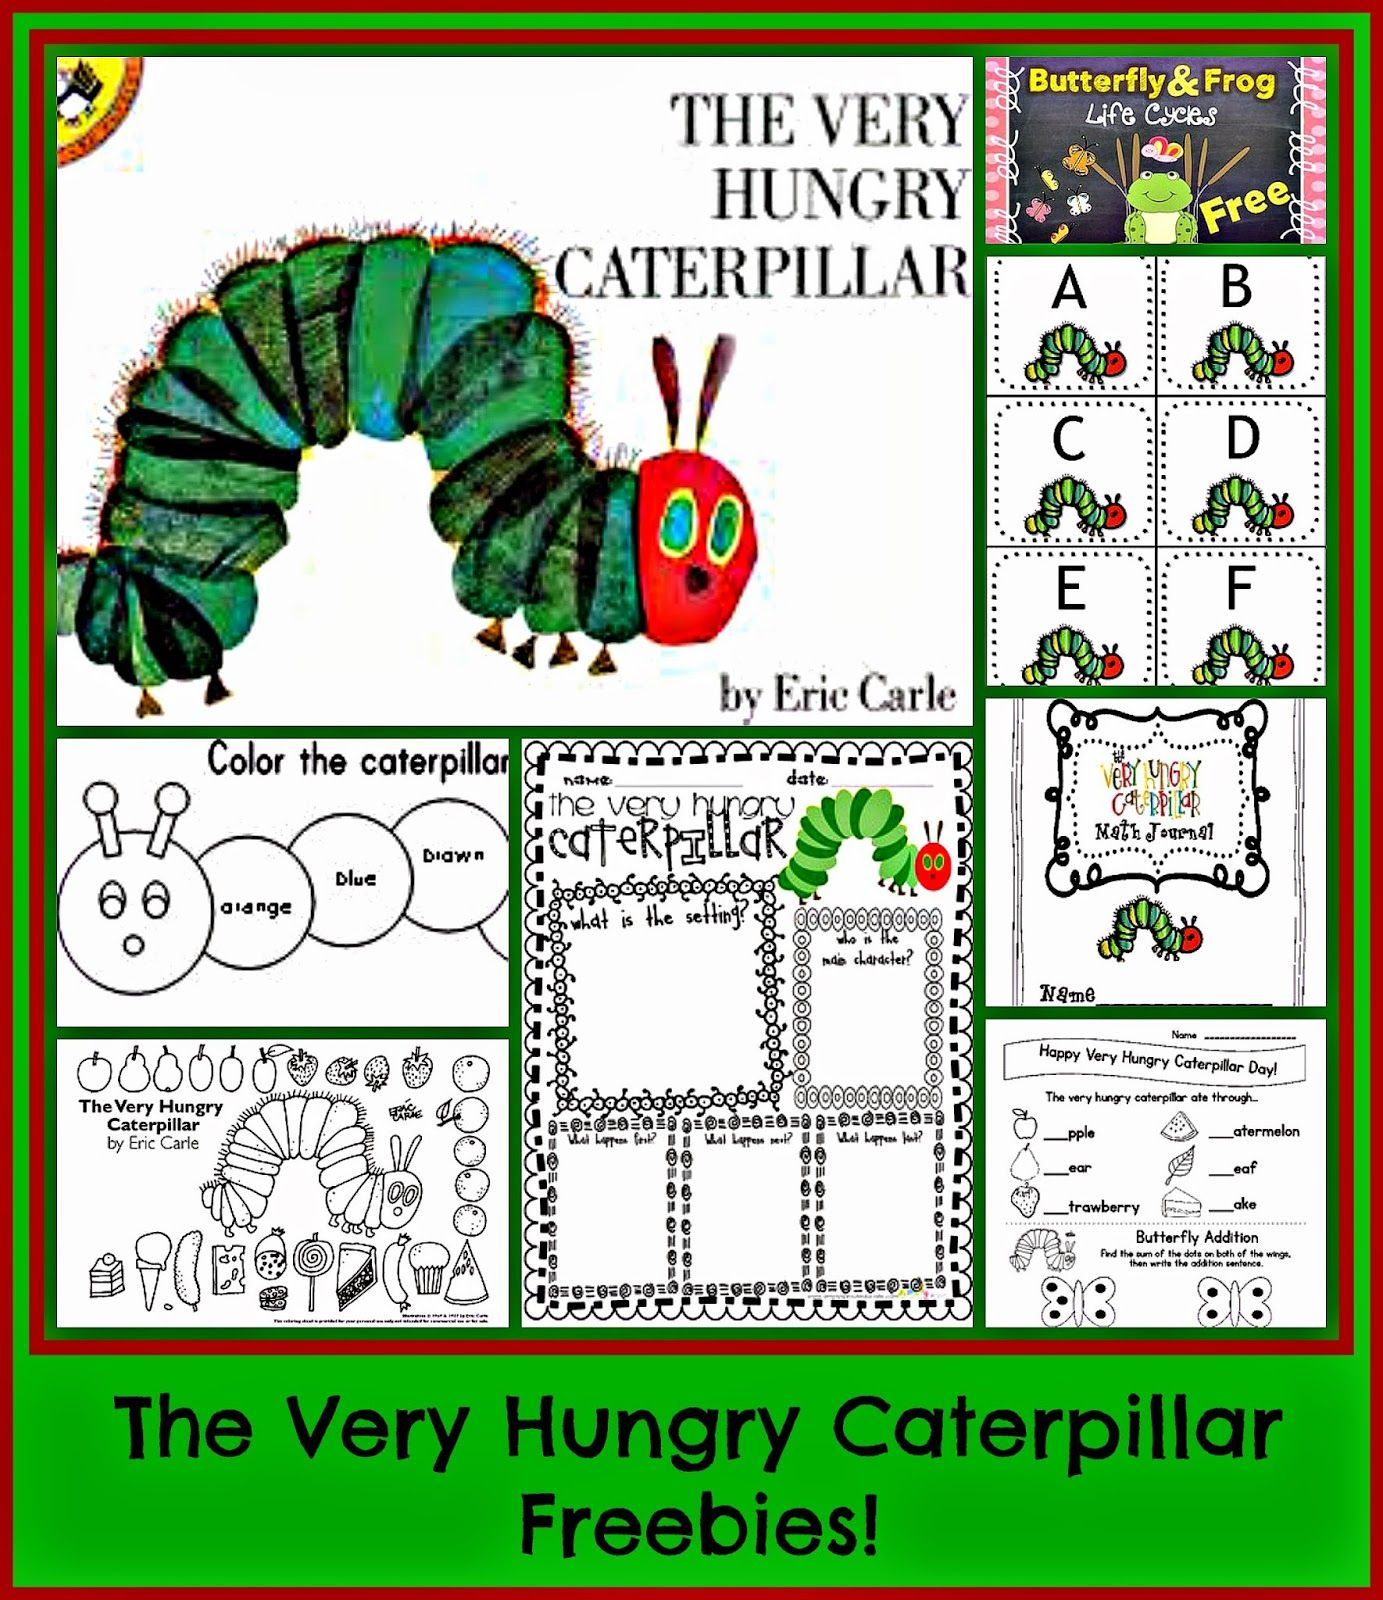 Kindergarten: Holding Hands and Sticking Together: Eric Carle and LOTS OF FREEBIES!